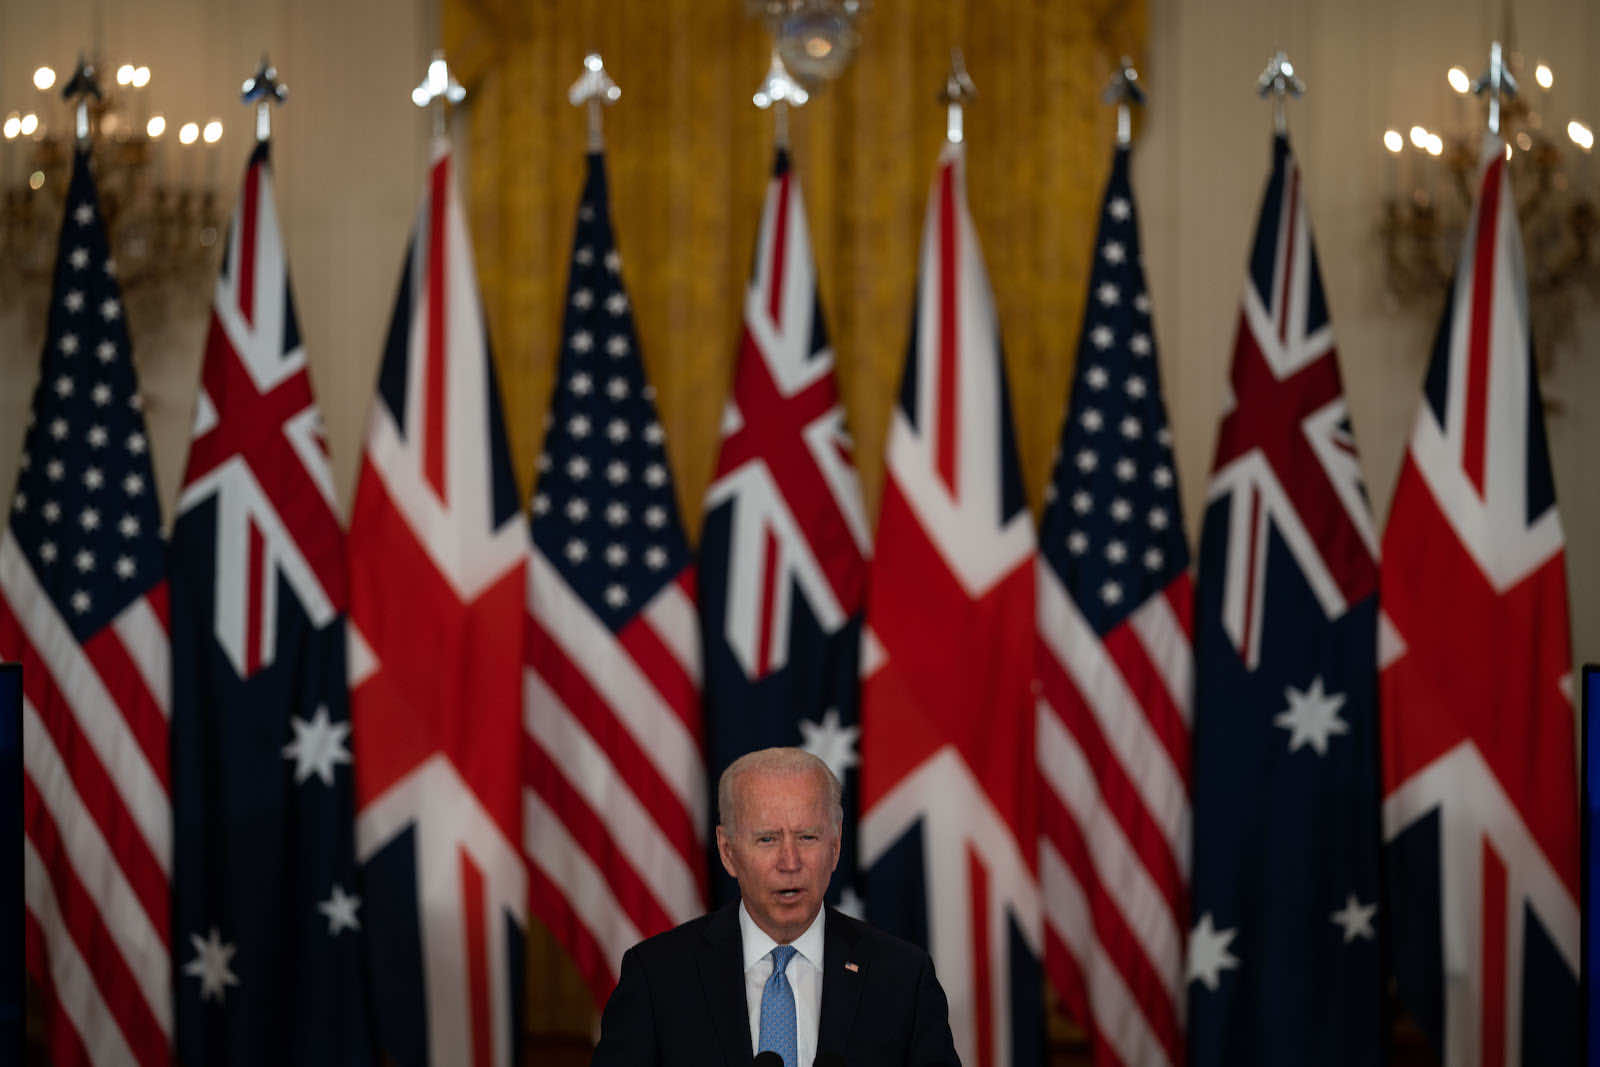 US President Joe Biden announcing that the United Staters along with the United Kingdom will share nuclear submarine technology with Australia under an arrangement dubbed AUKUS (Kent Nishimura/Los Angeles Times via Getty Images)